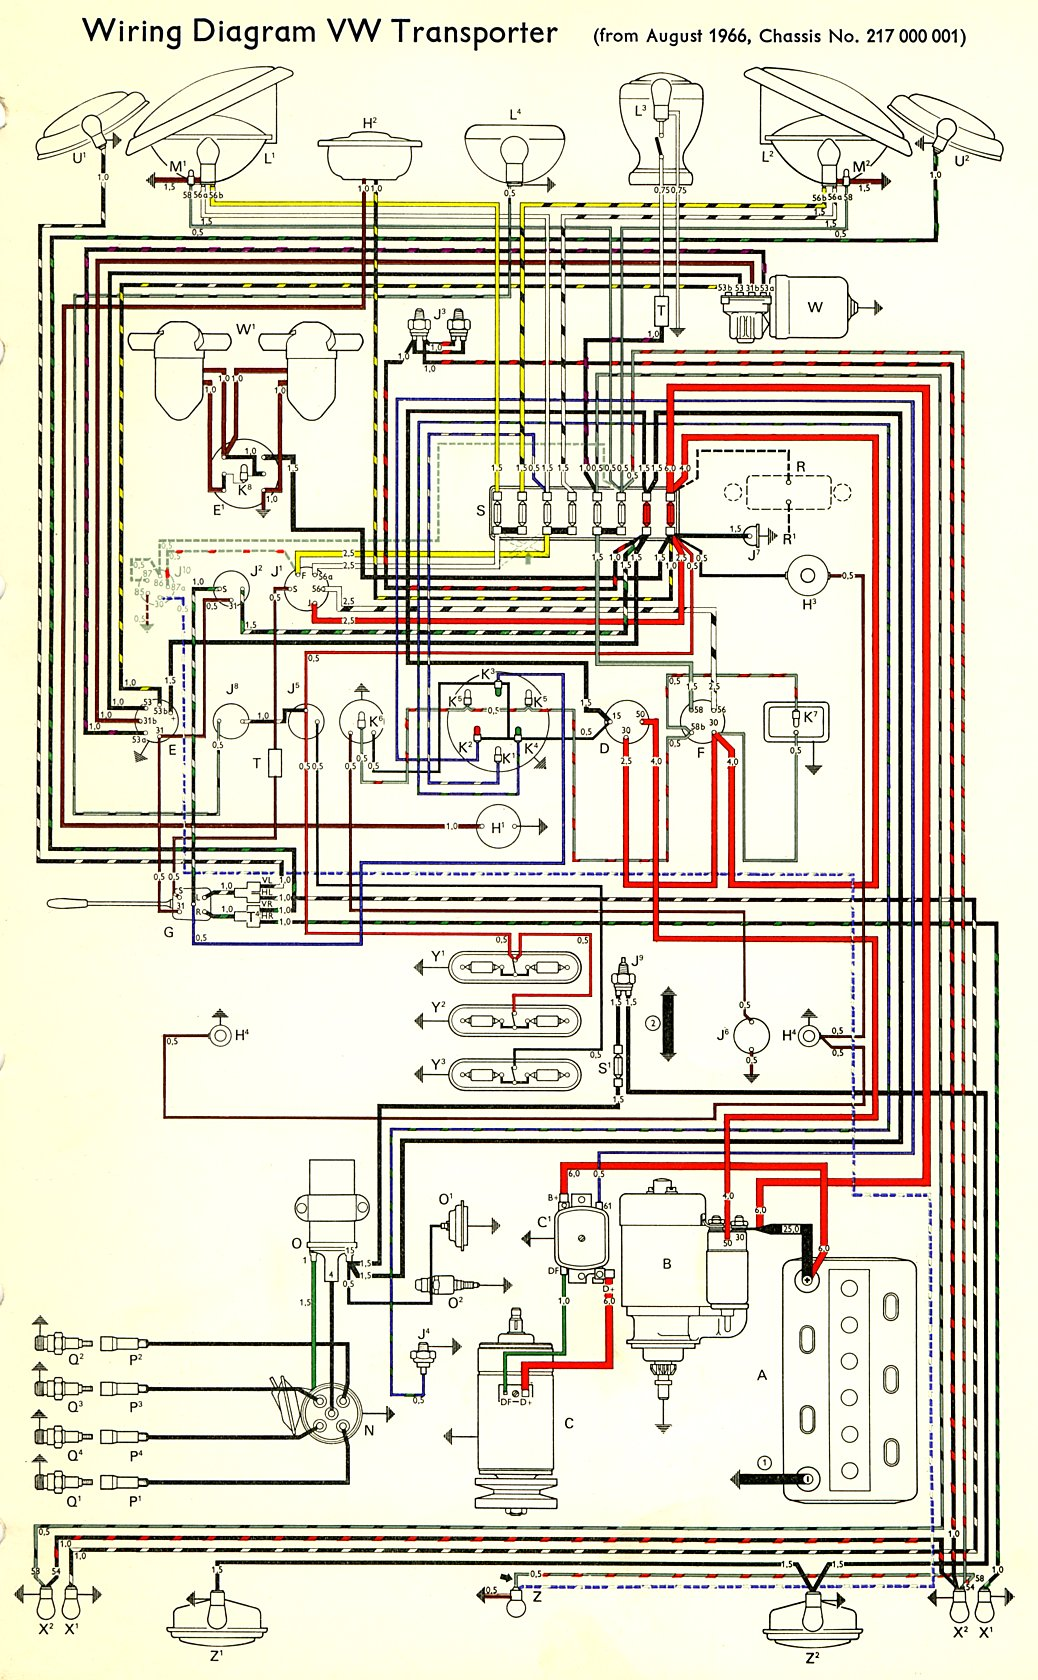 bus_67 vw wiring harness diagram cj7 wiring harness diagram \u2022 wiring DIY Lingerie Harness at virtualis.co